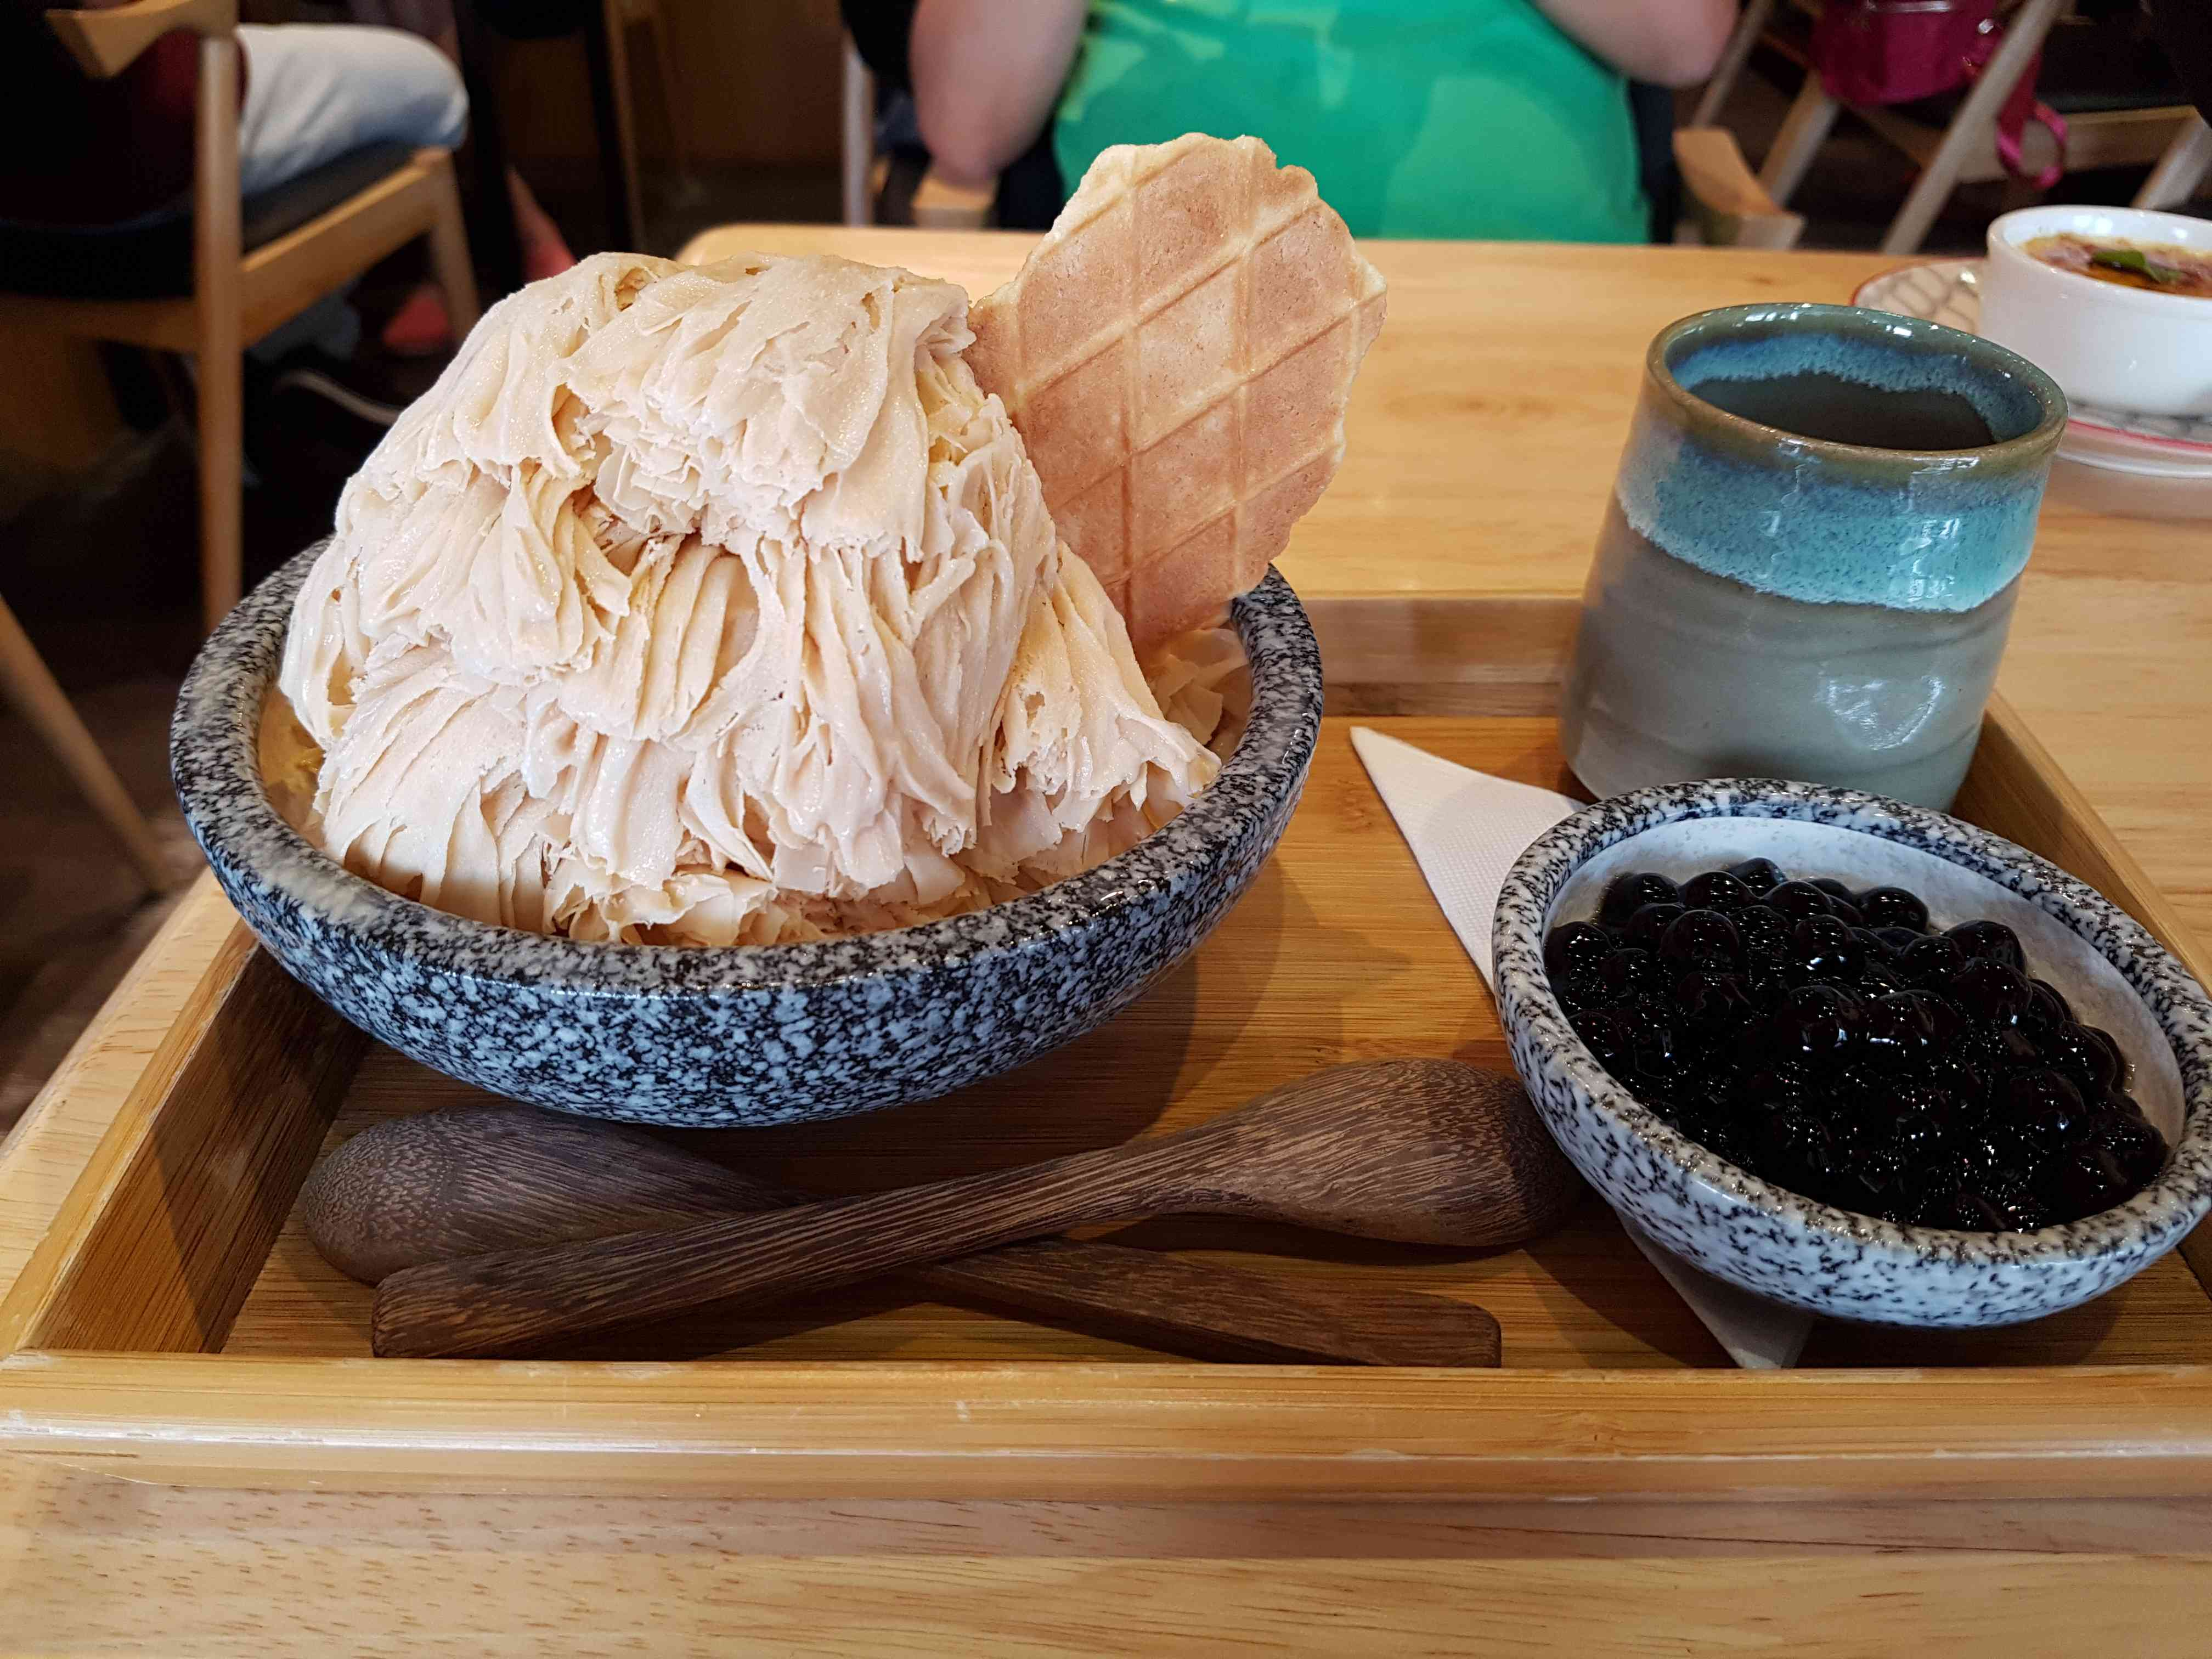 milk-tea flavored xuehuabing in a stone bowl with a side bowl of tapioca pearls